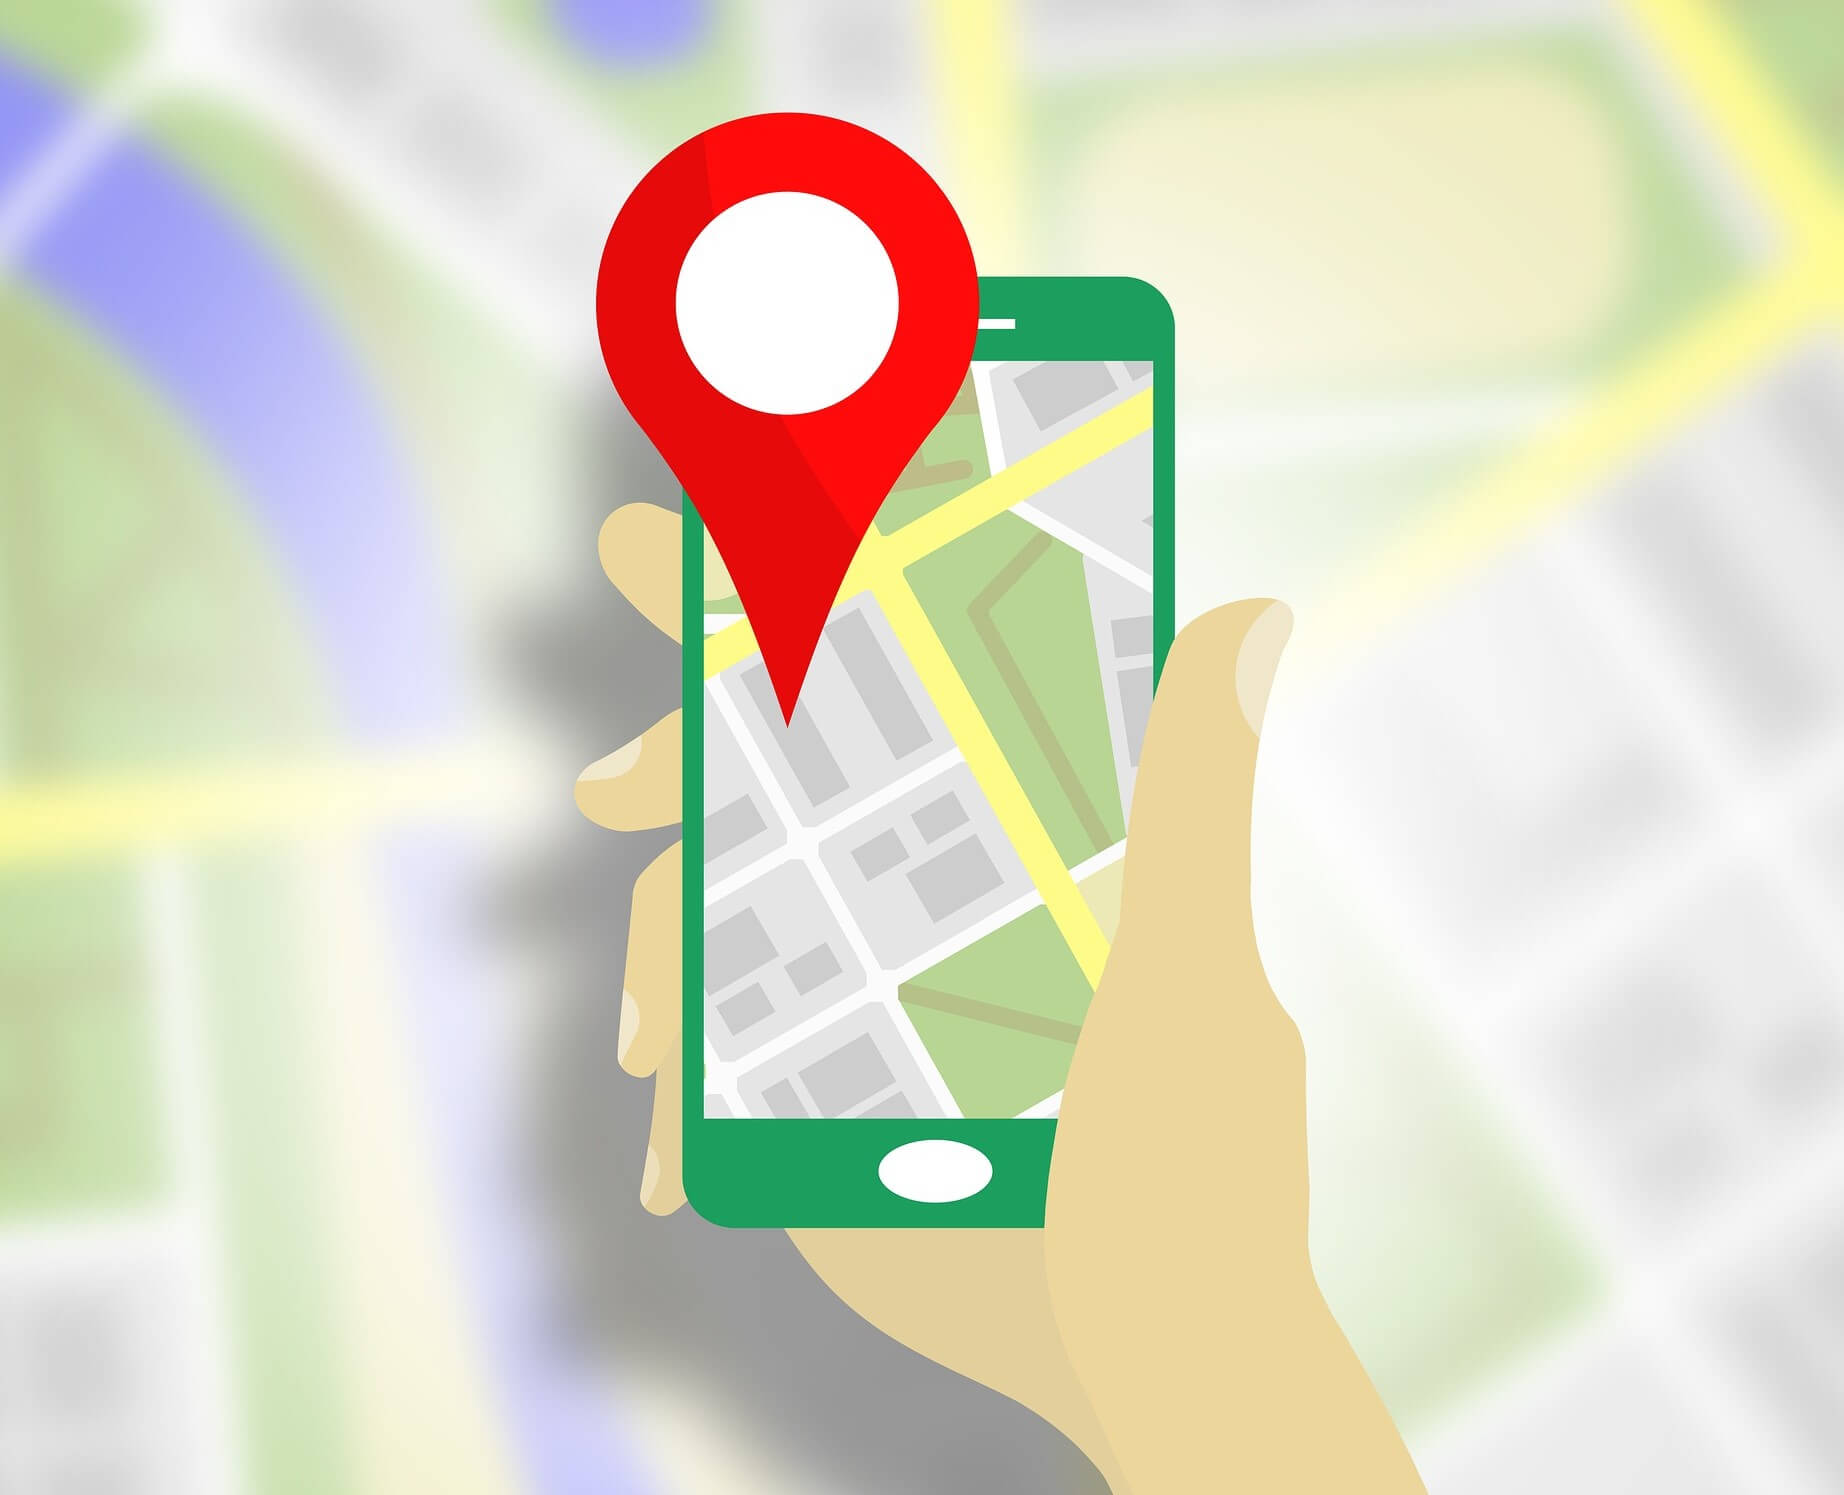 Gps Tracking App Is It Right To Track Someone S Location